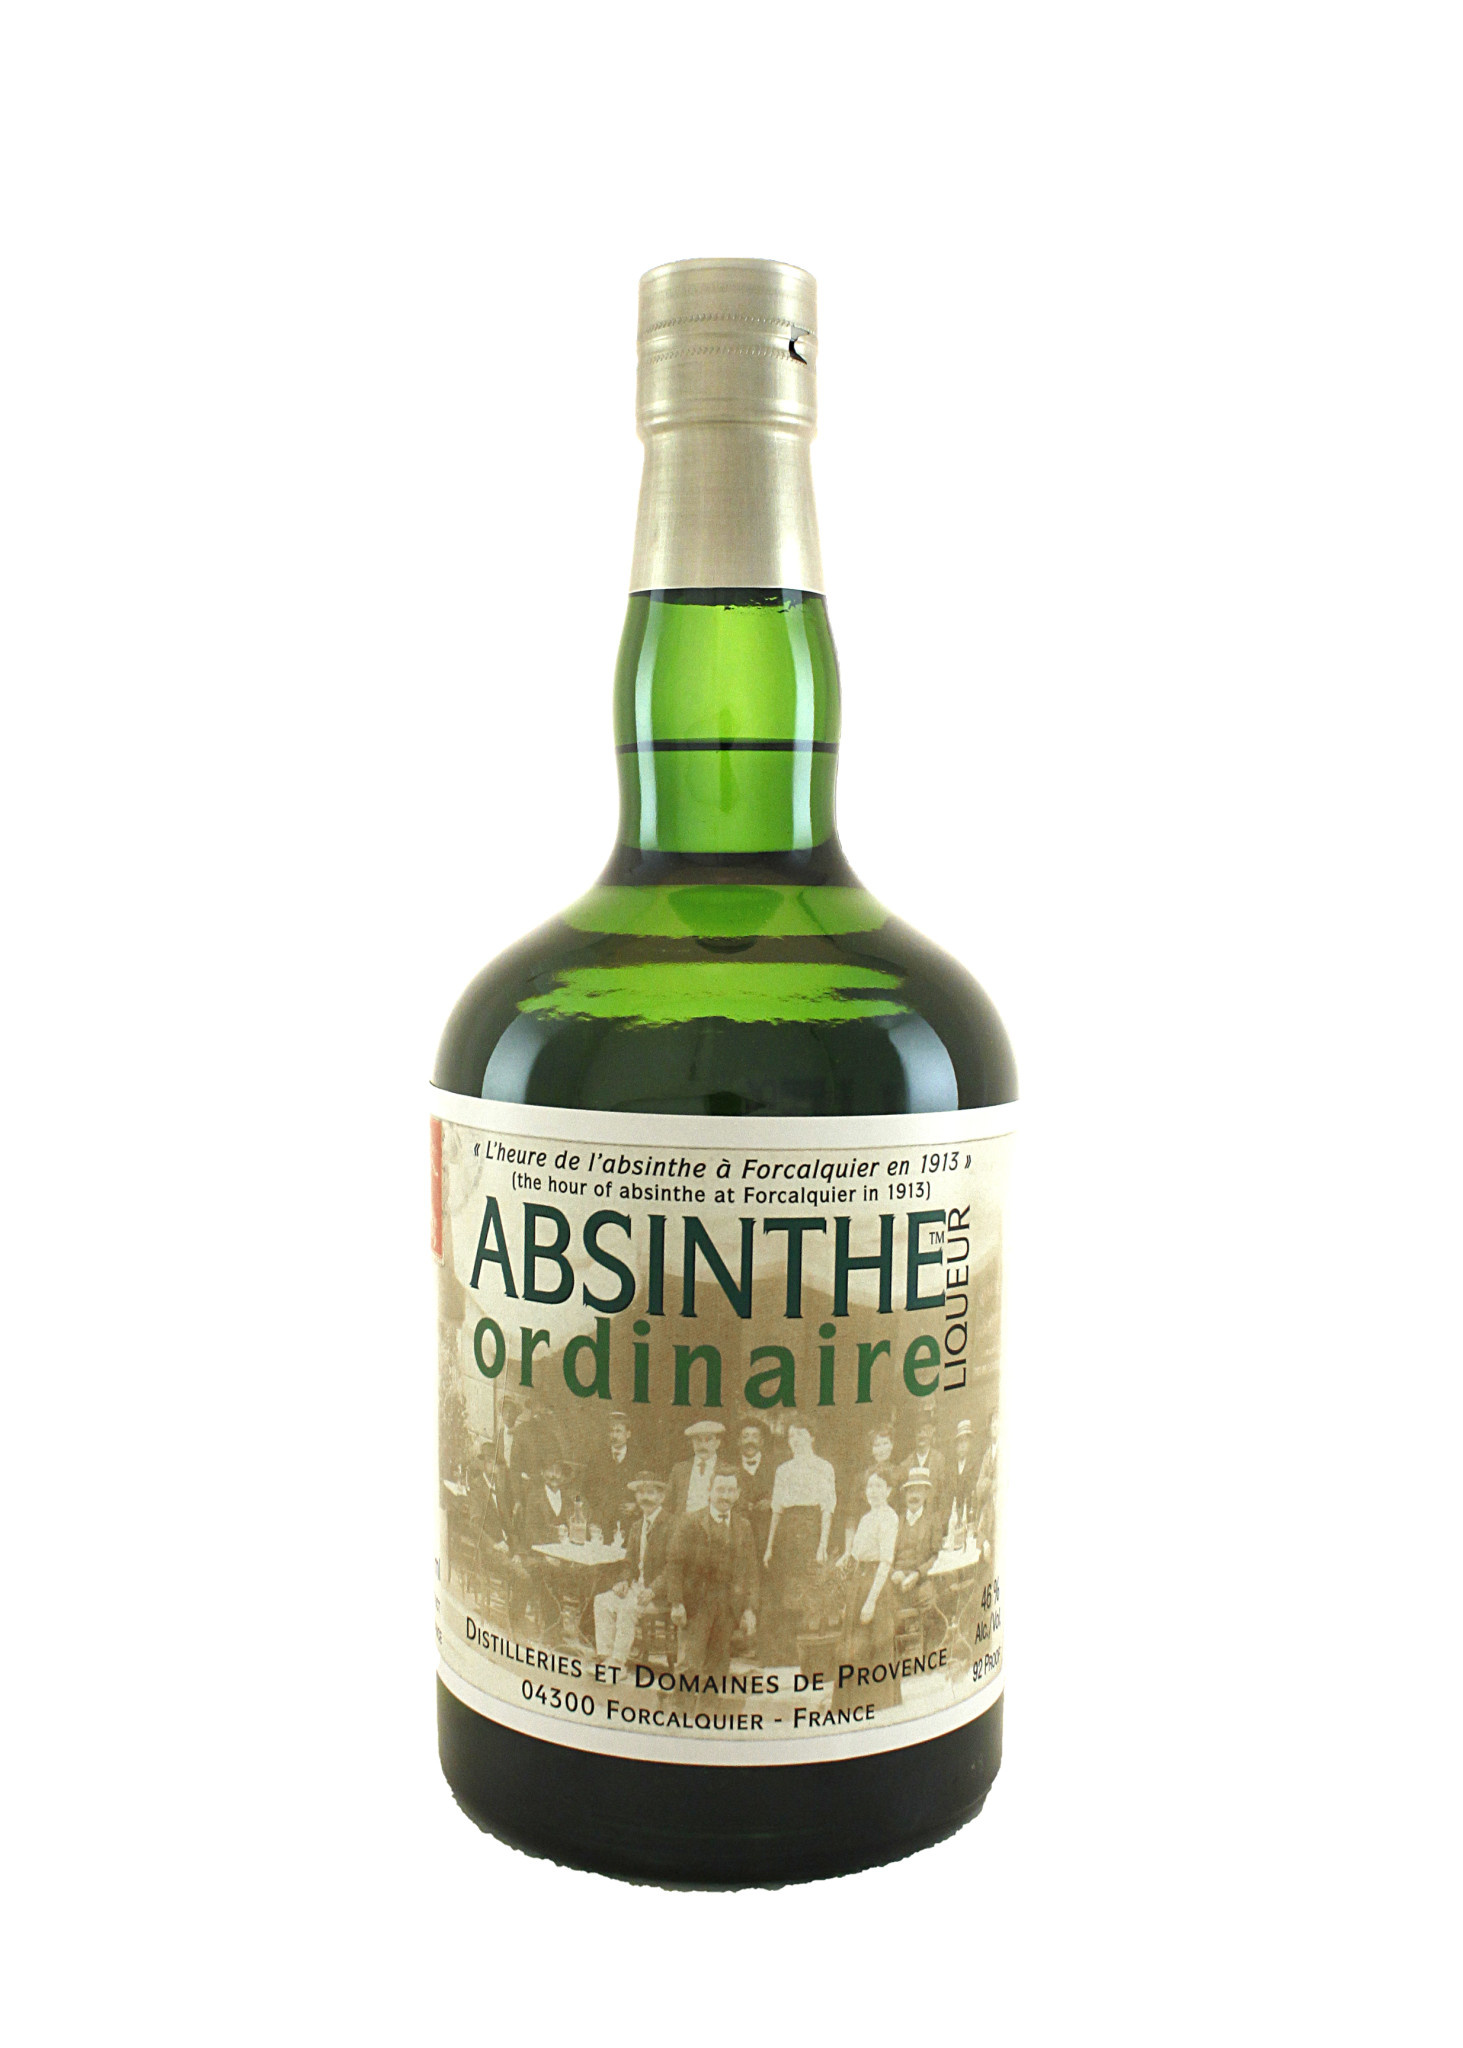 Absinthe Ordinaire Liqueur, France